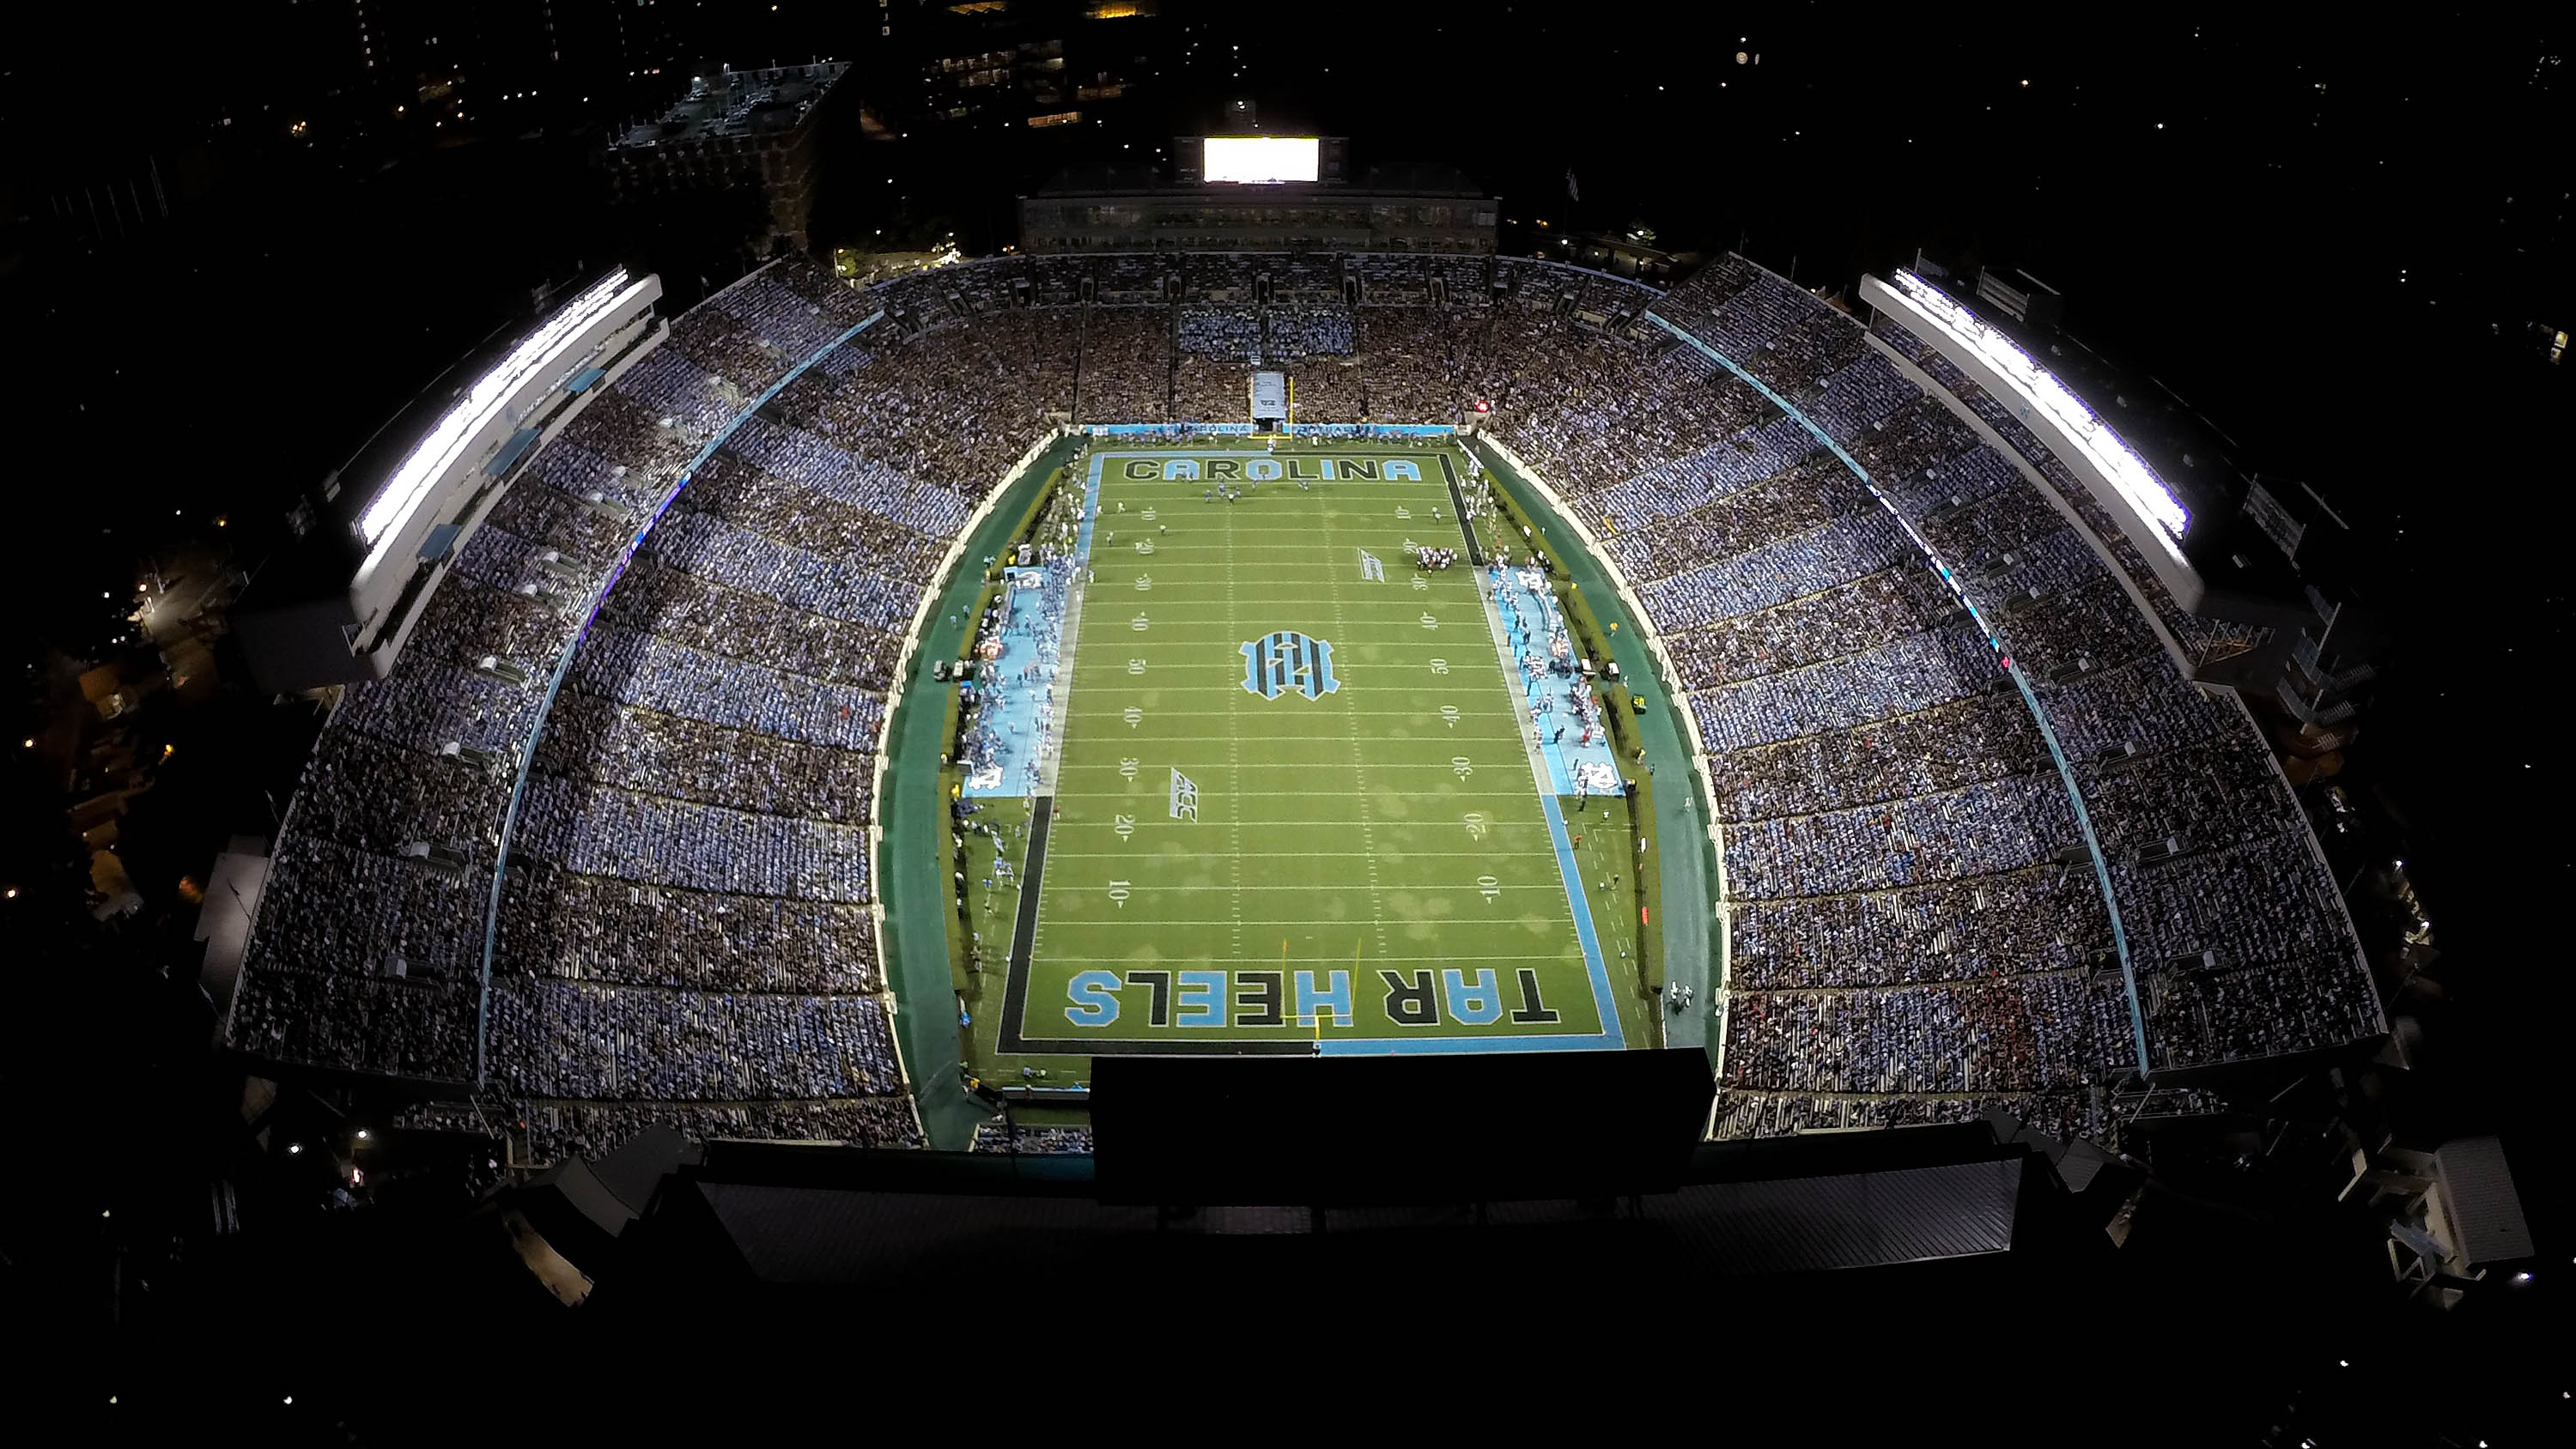 Kenan Stadium - Chapel Hill